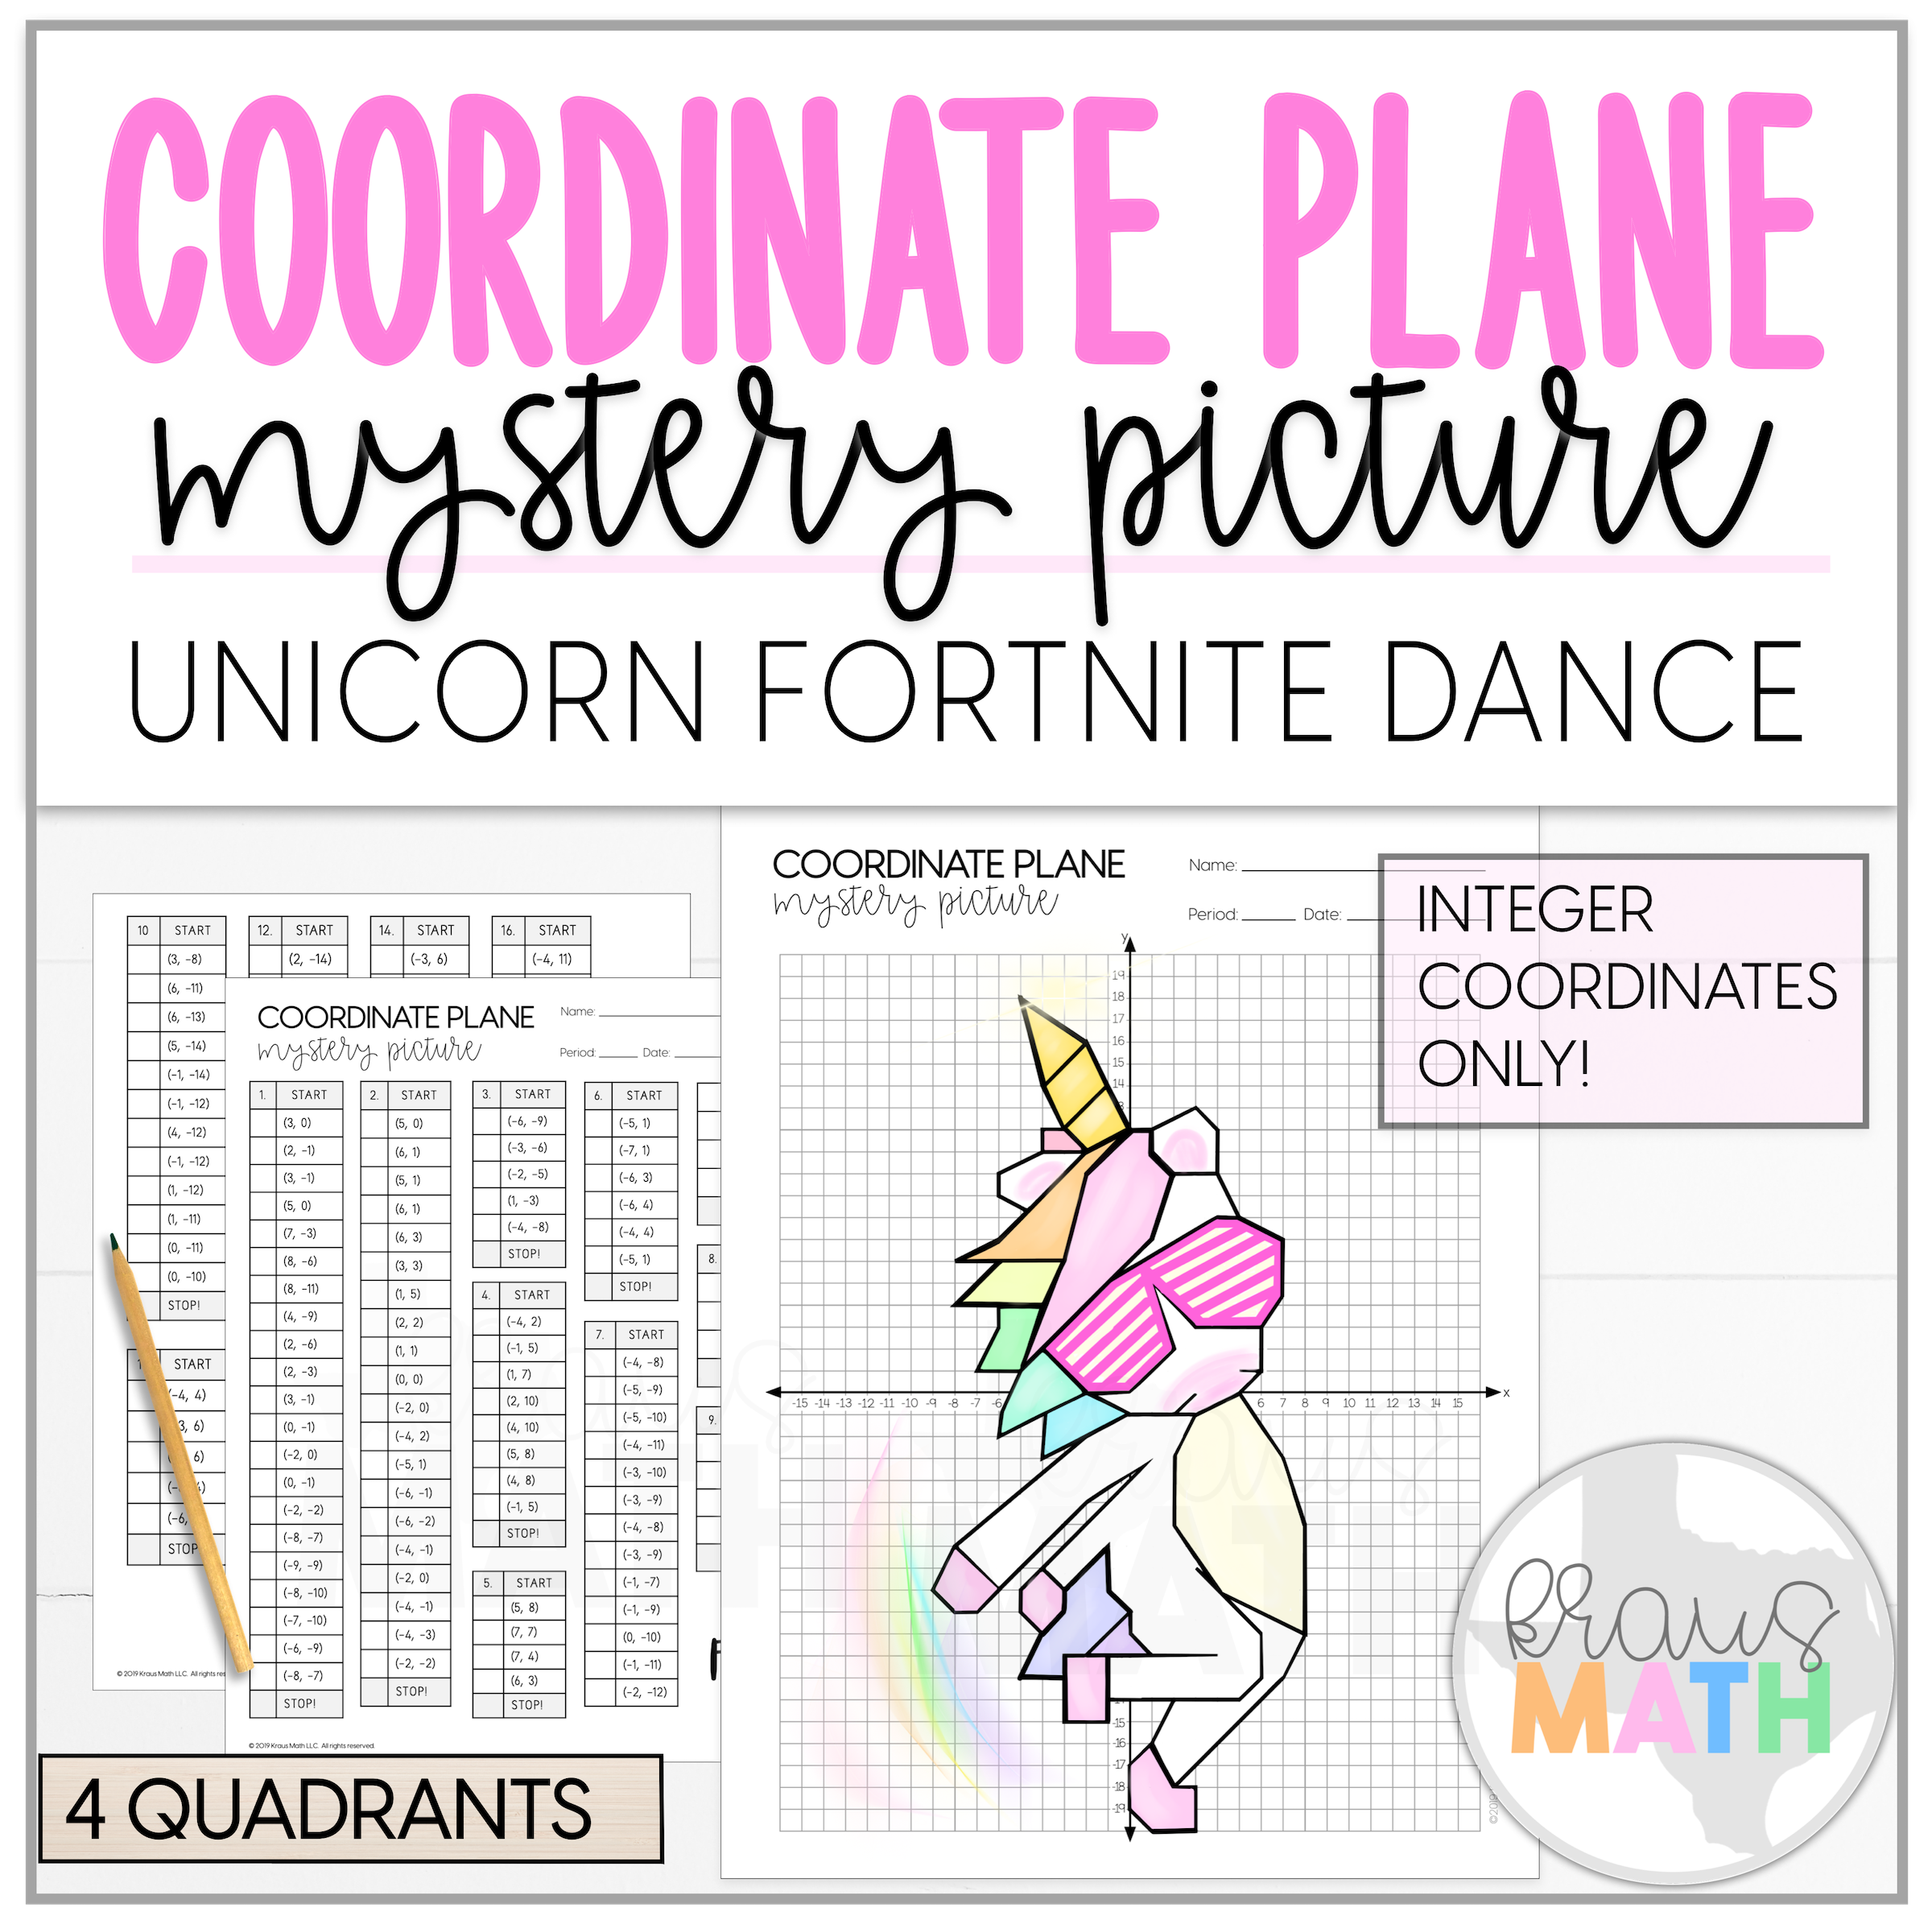 Unicorn Fortnite Shoot Dance Coordinate Plane Mystery